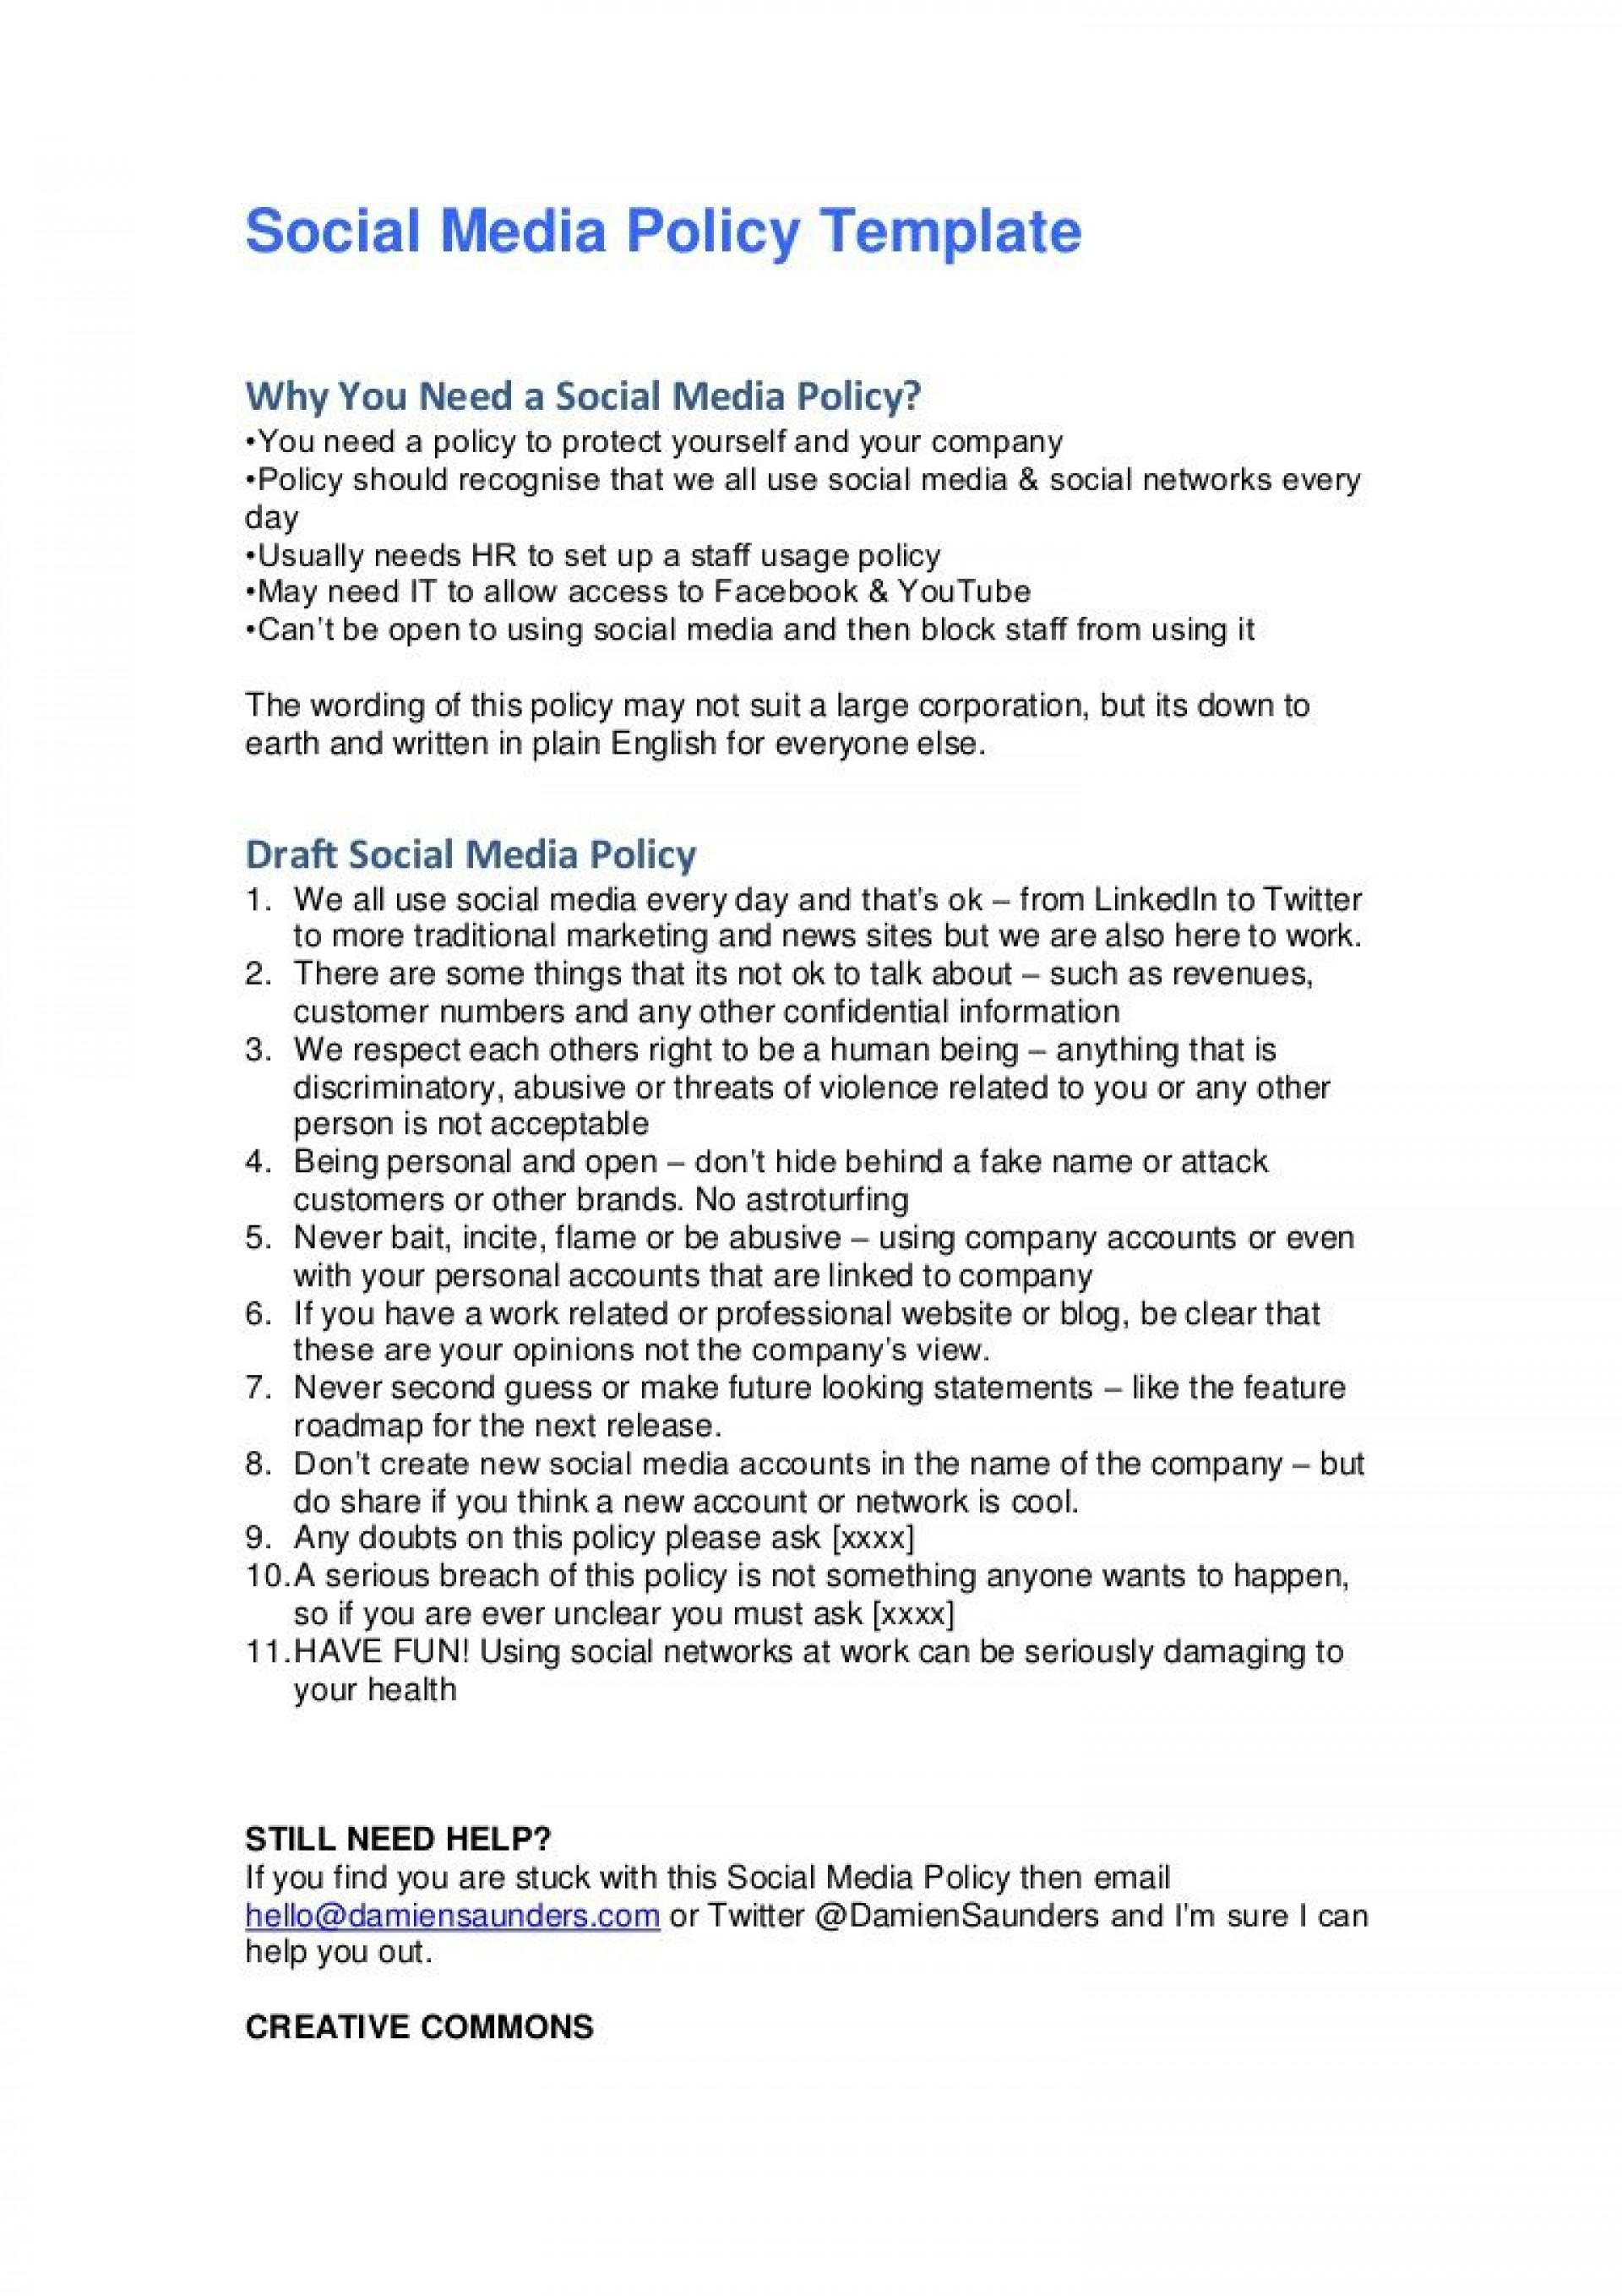 008 Simple Social Media Policie Template Example  Policy Australia For Small Busines1920